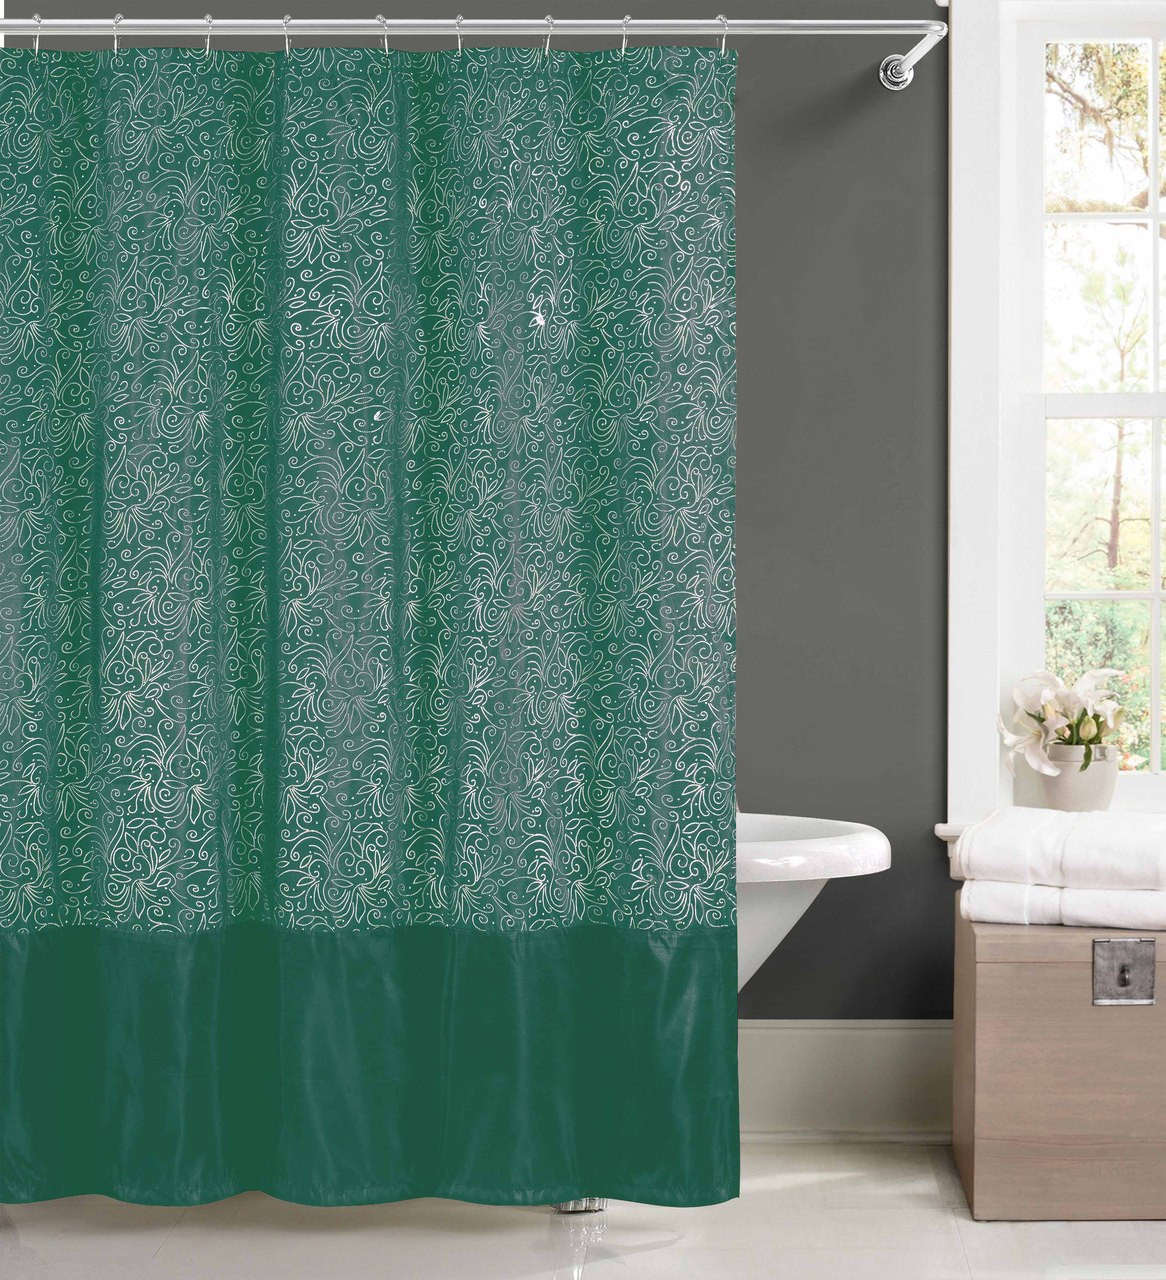 Teal Fabric Shower Curtain With Metallic Silver Raised Pin Dots